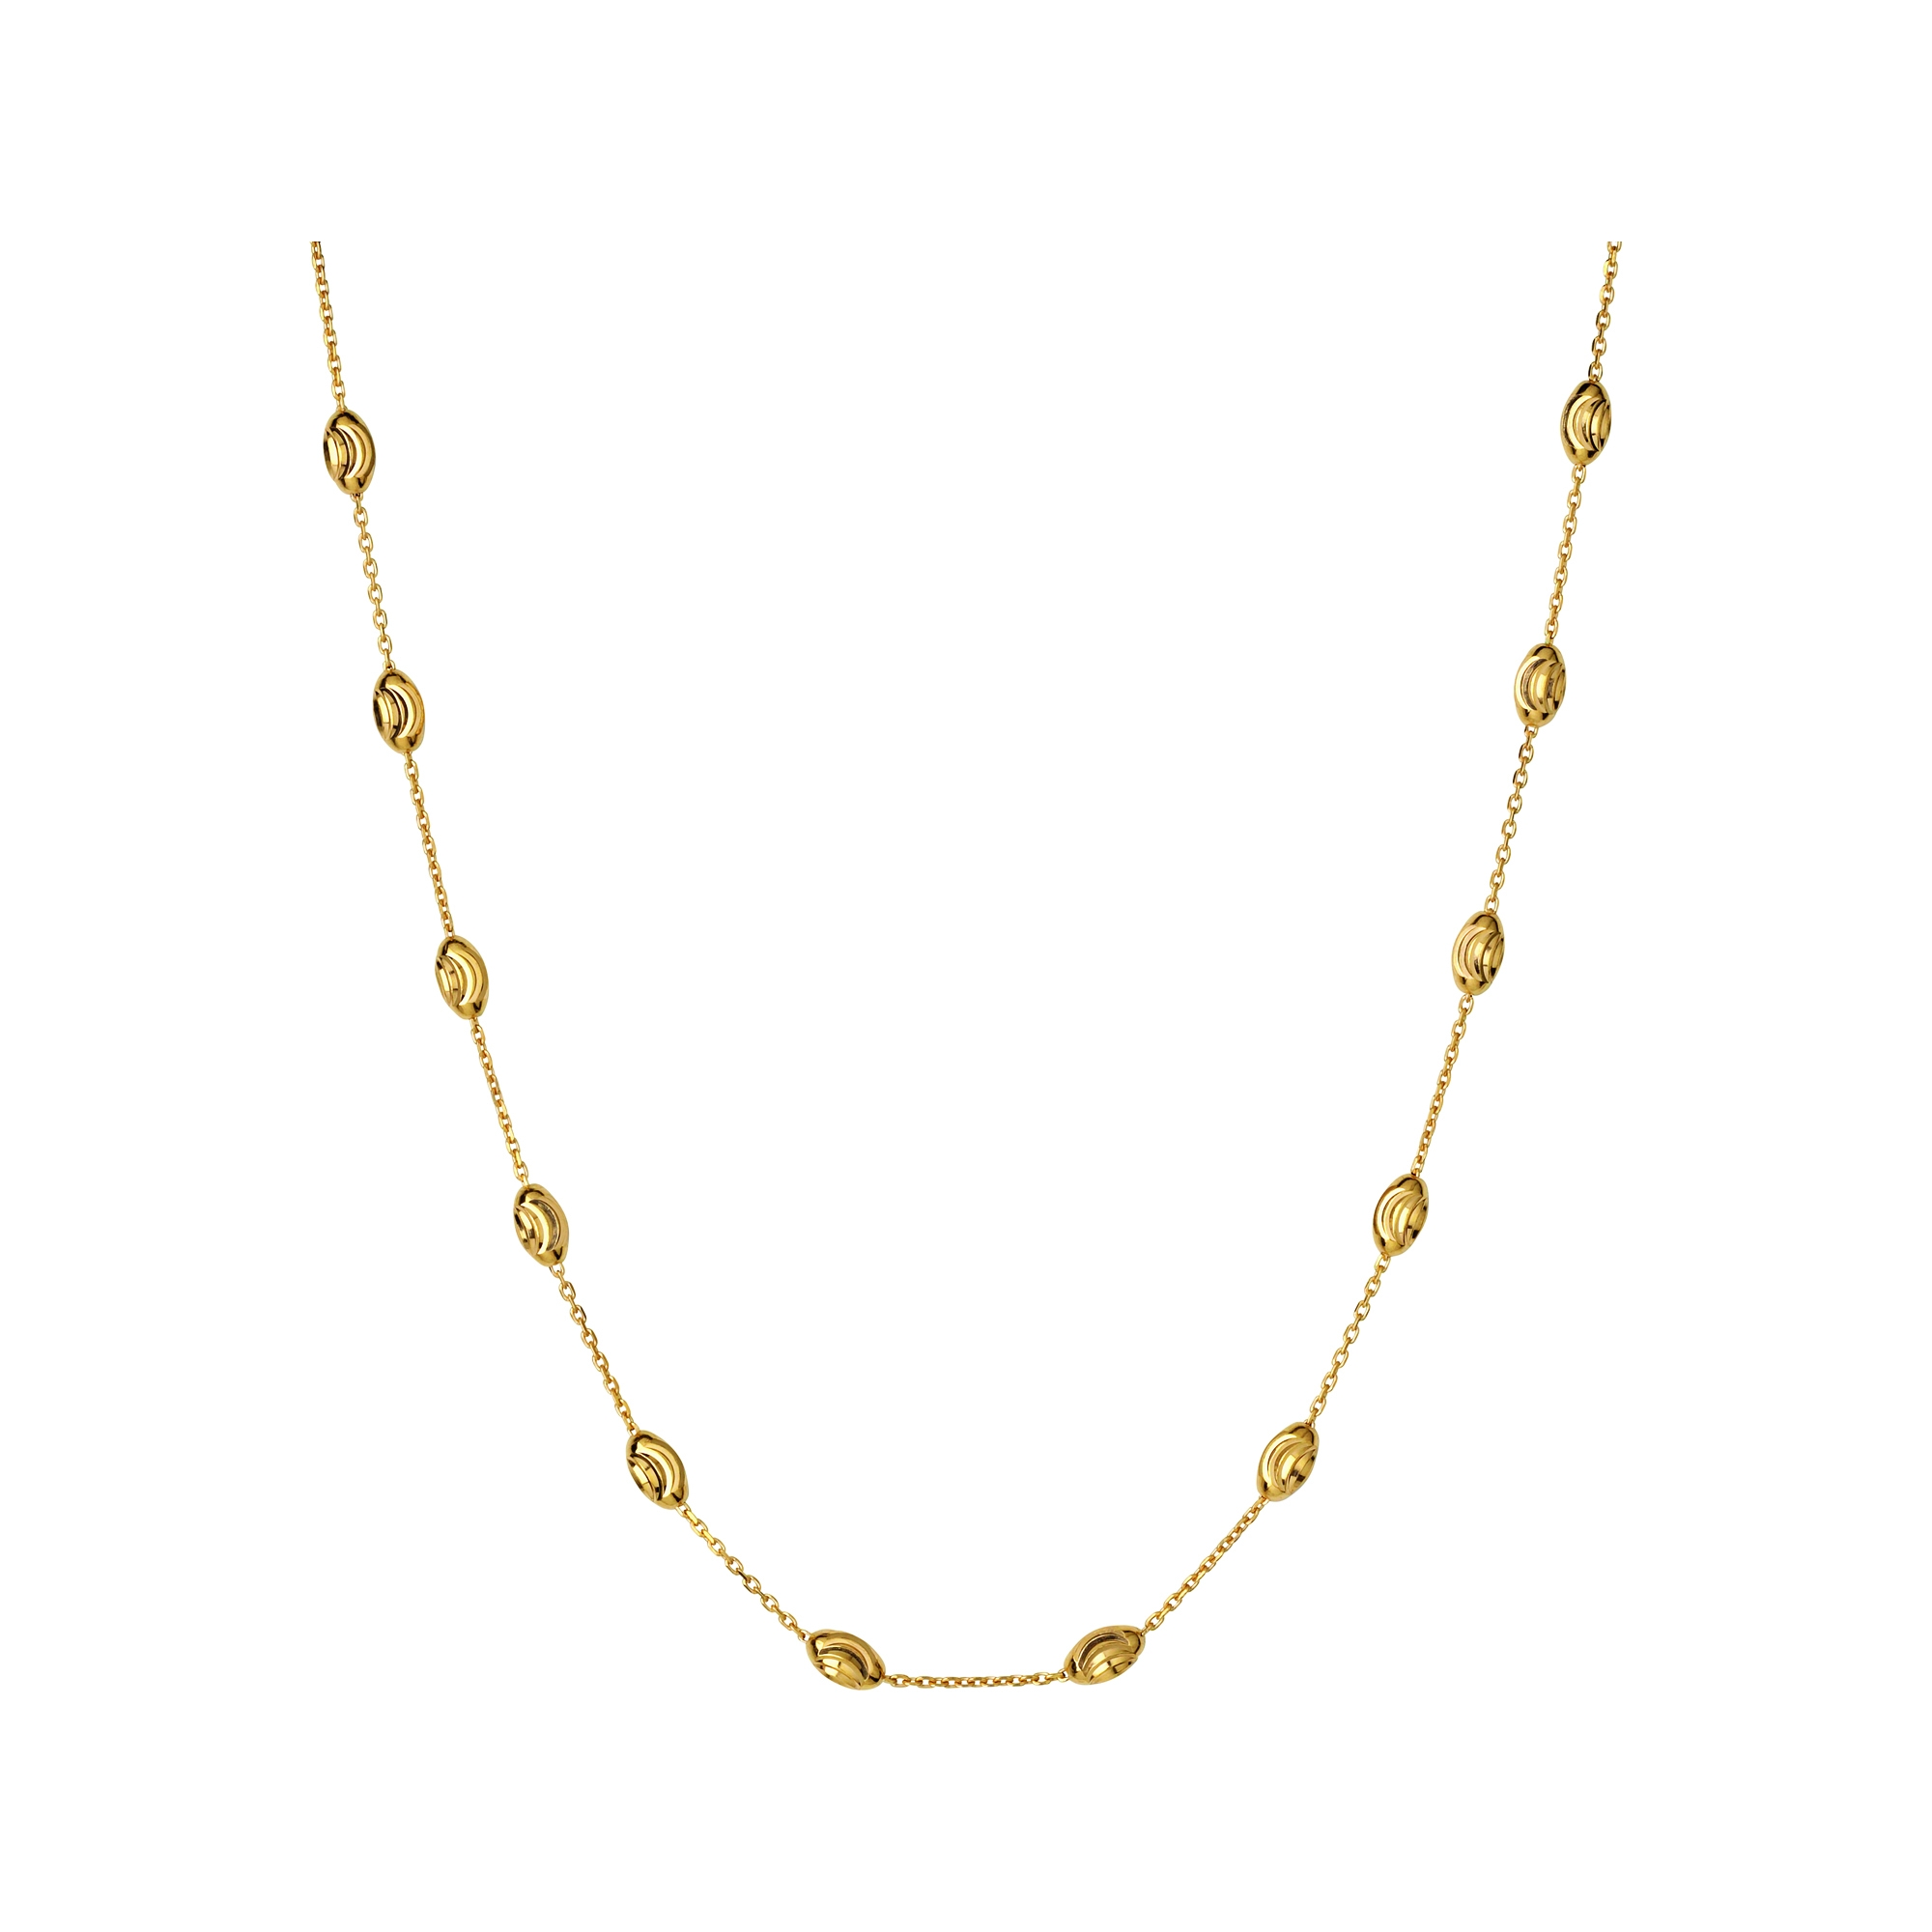 Links of London Essentials 18kt Yellow Gold Vermeil Beaded Chain Necklace 45cm-0